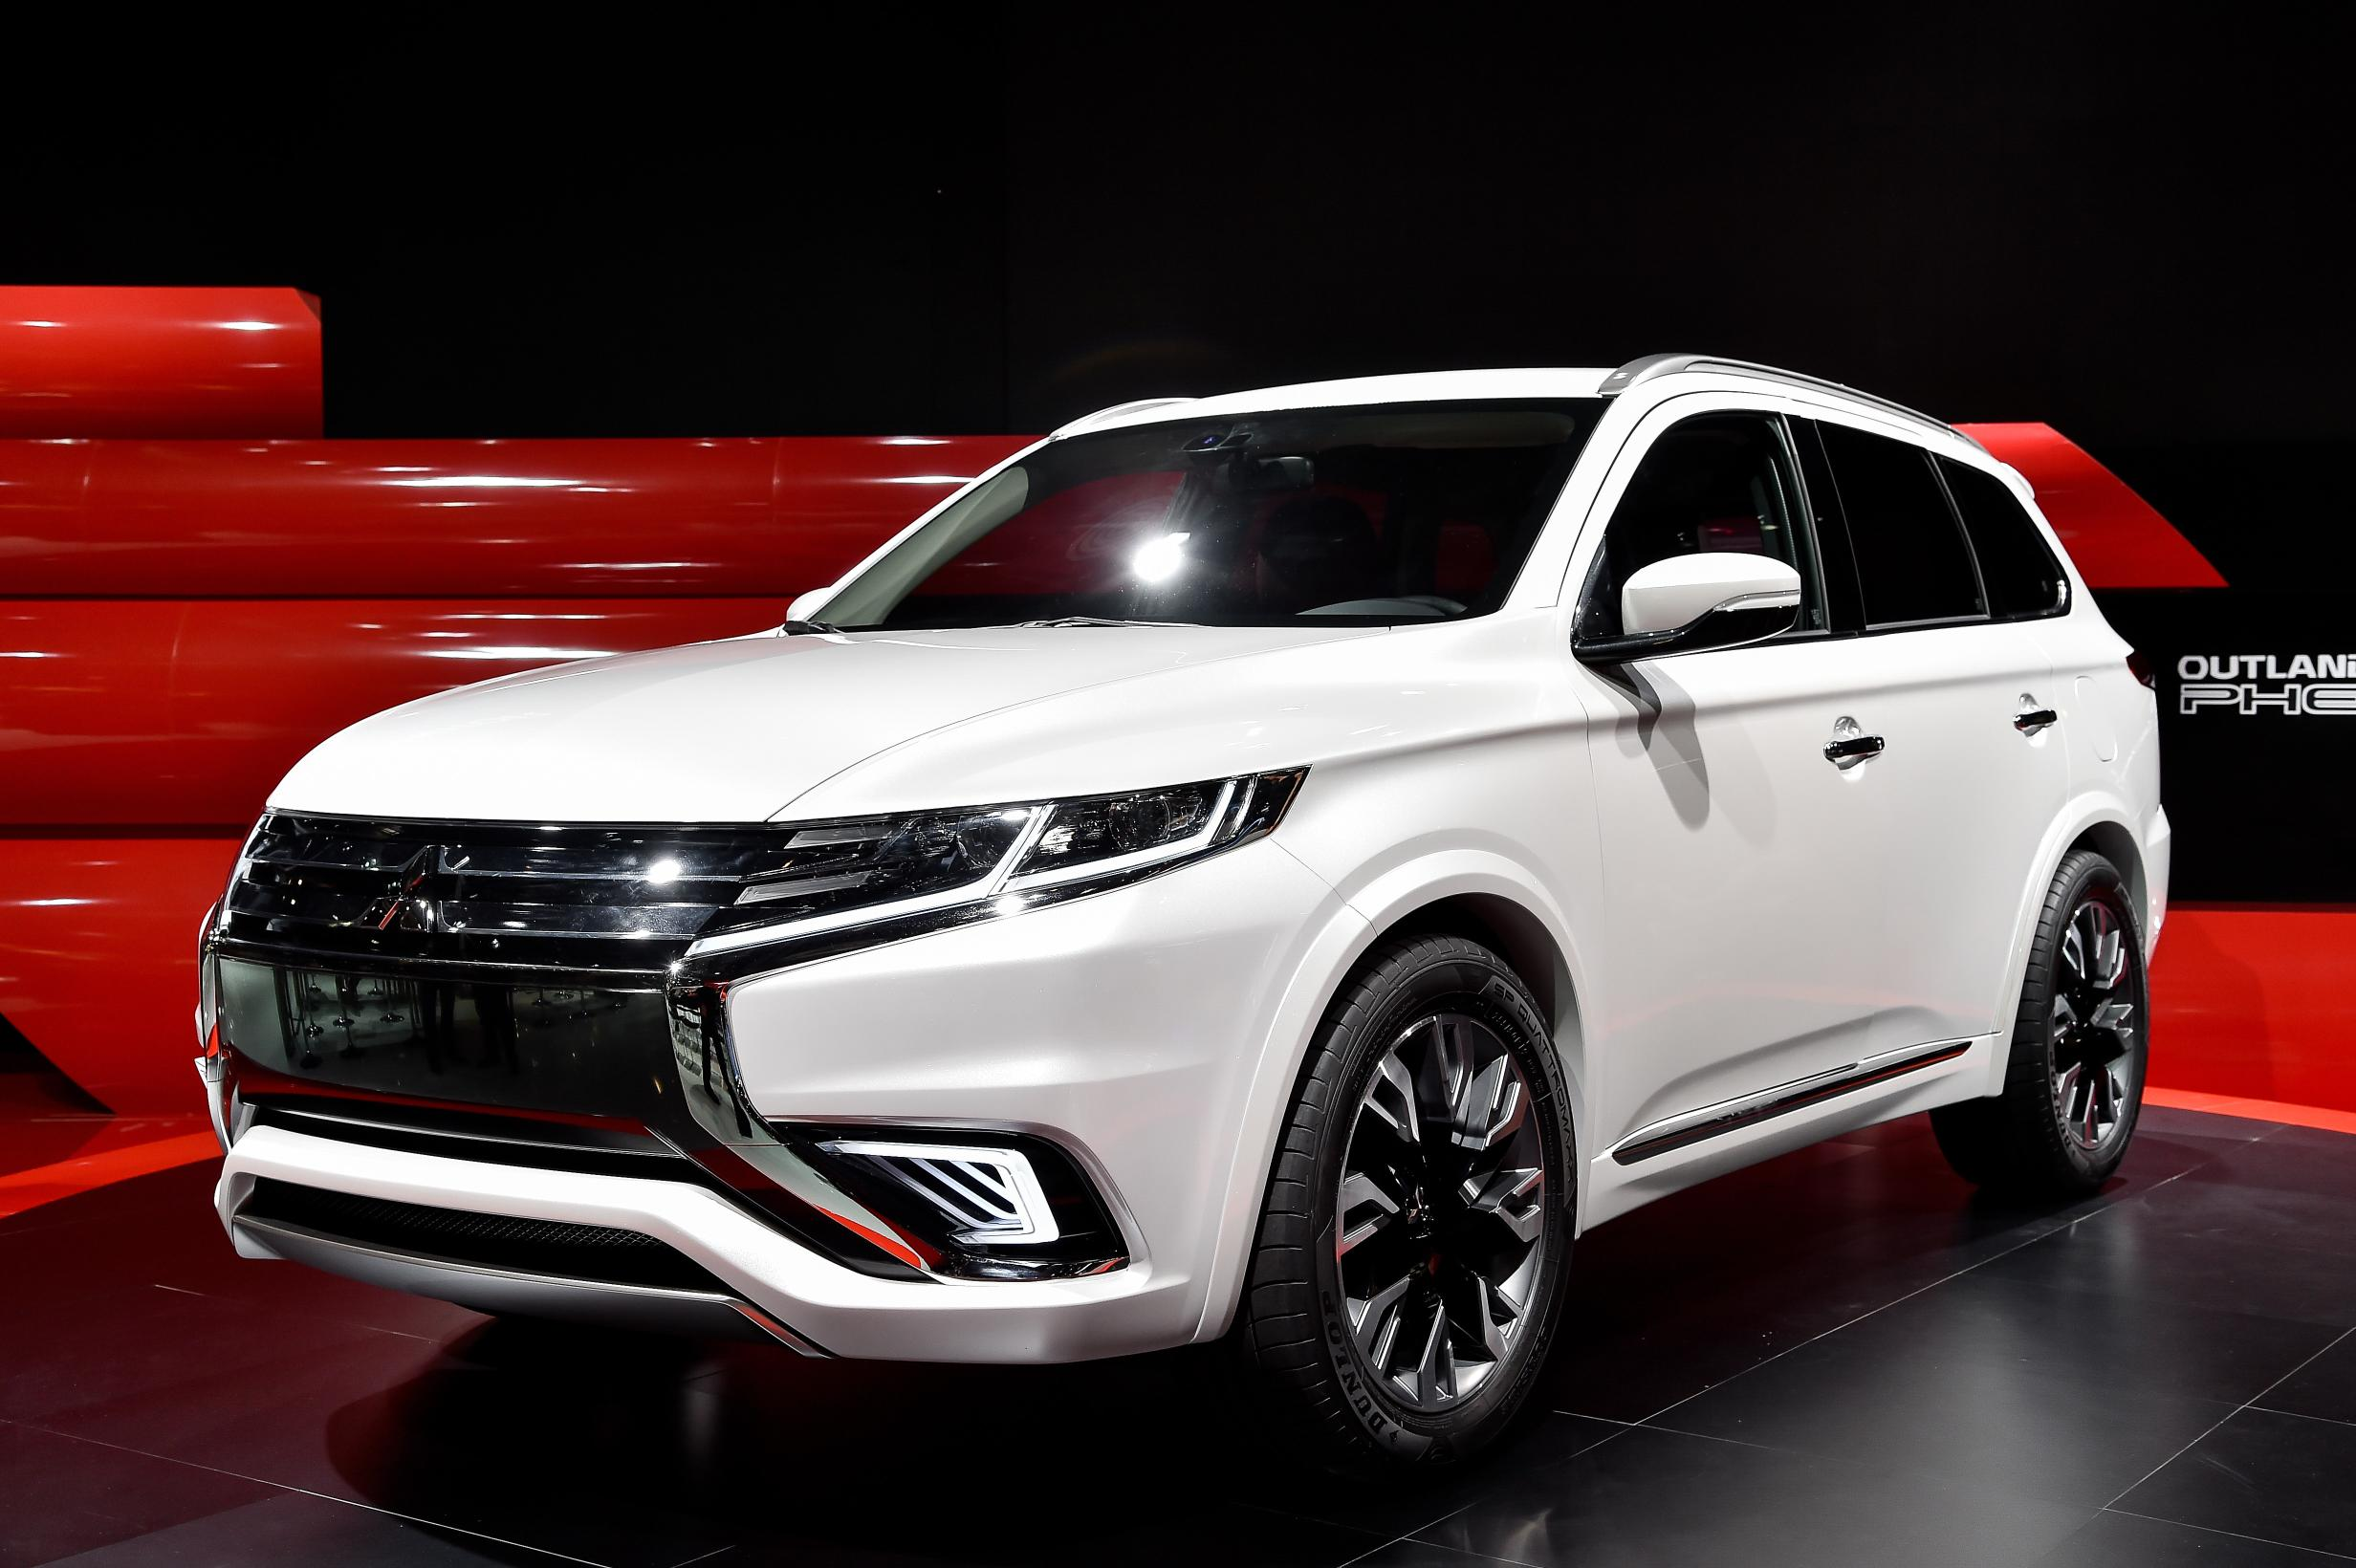 Latest Venza 2016 >> 2016 Mitsubishi Outlander Facelift Spied Ahead of New York ...